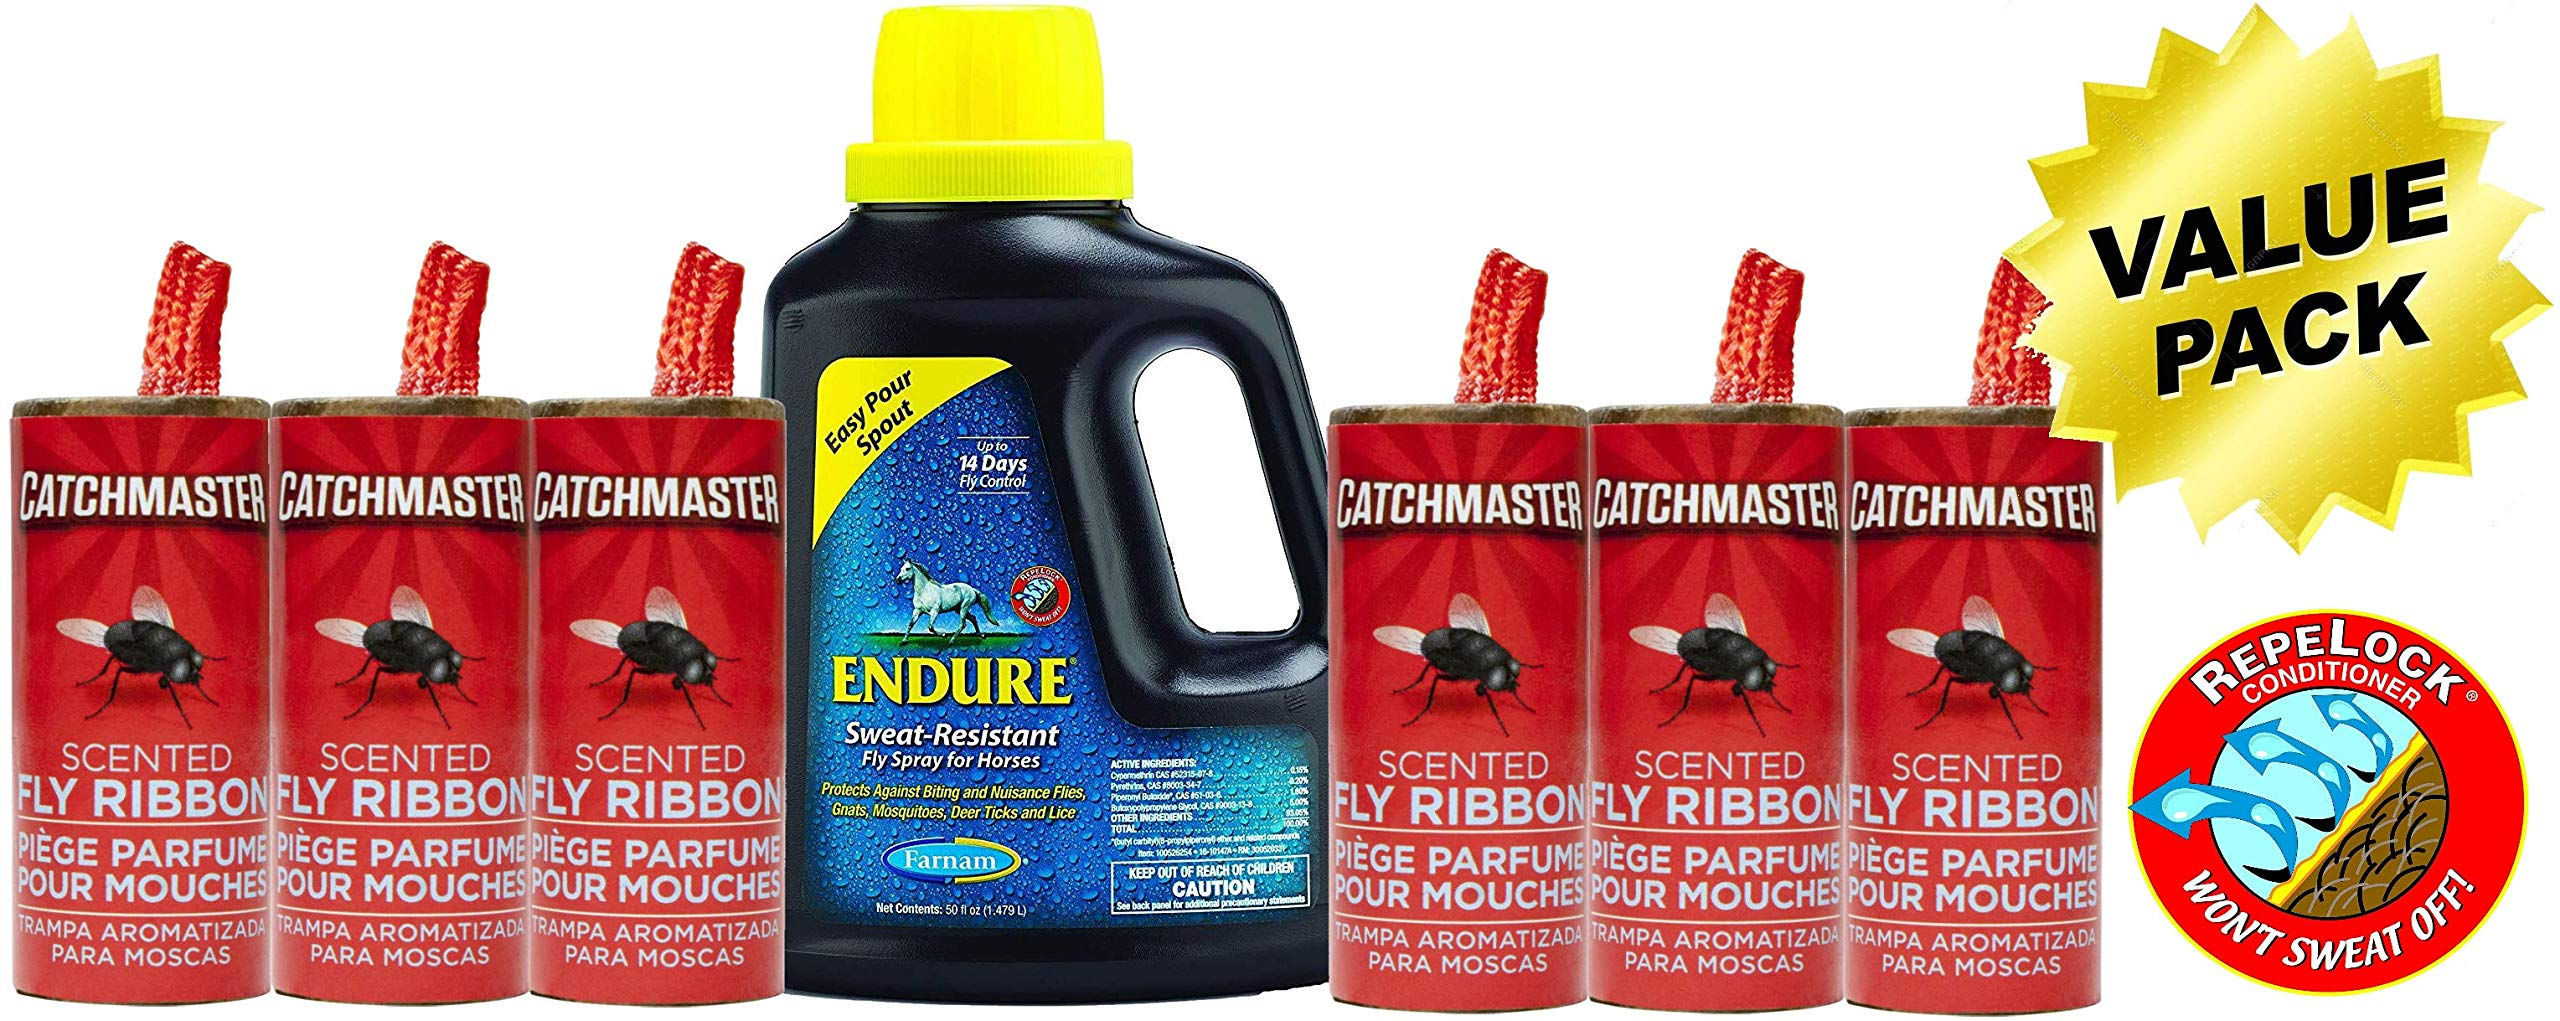 Farnam Solutions Horse Fly Spray Repellent Value Pack - Endure Sweat-Resistant Fly Spray for Horses, 50 oz Easy Pour Bottle with (6) Complimentary Catchmaster Pro Strength Fly Ribbons by Farnam Solutions